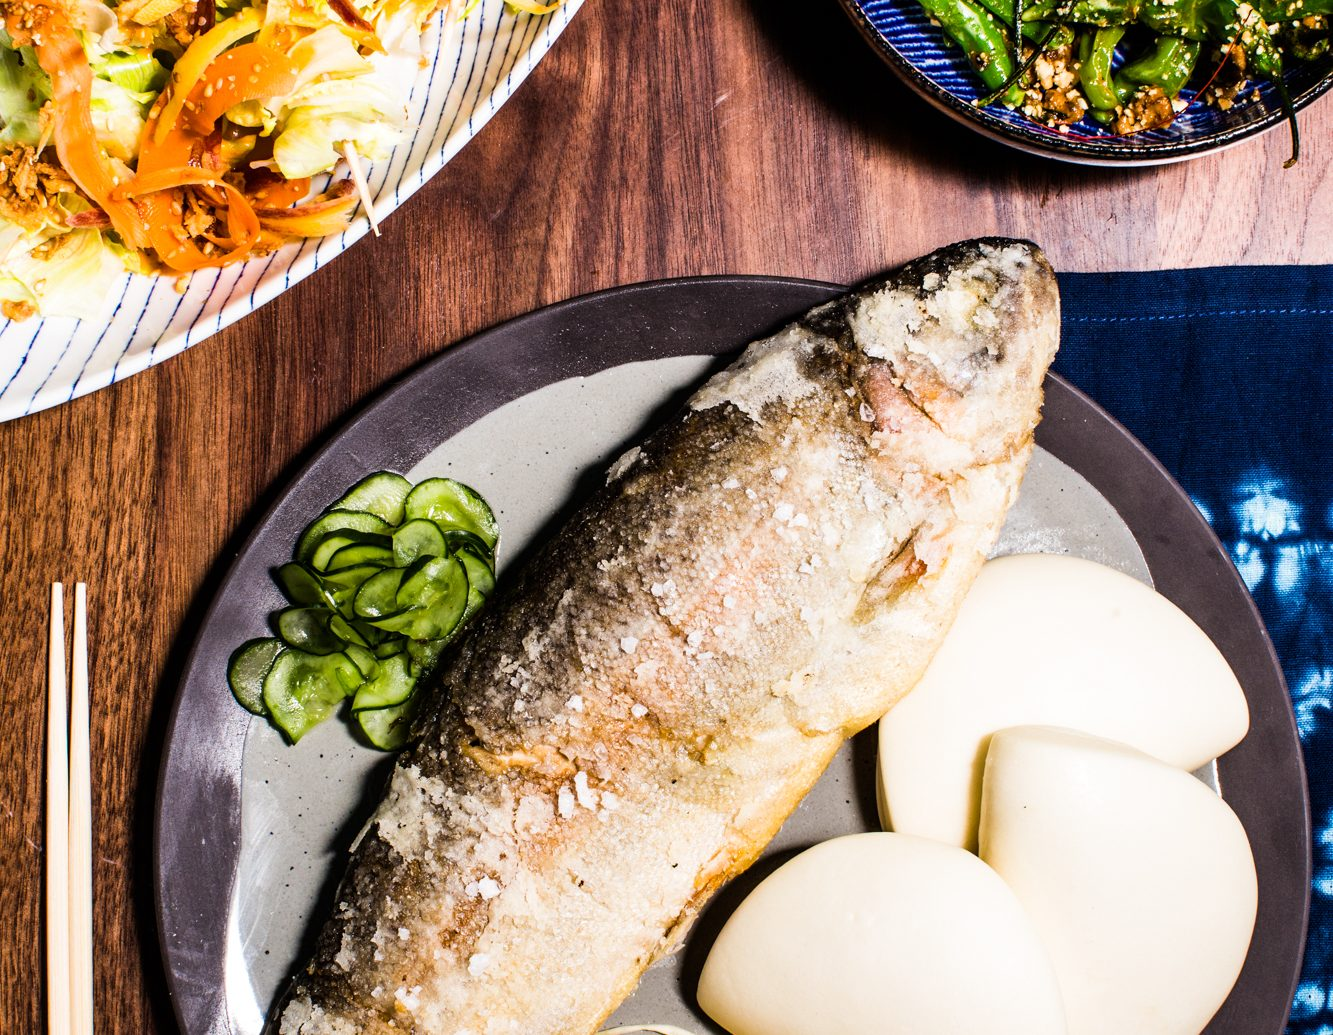 Whole fish dish and two more dishes